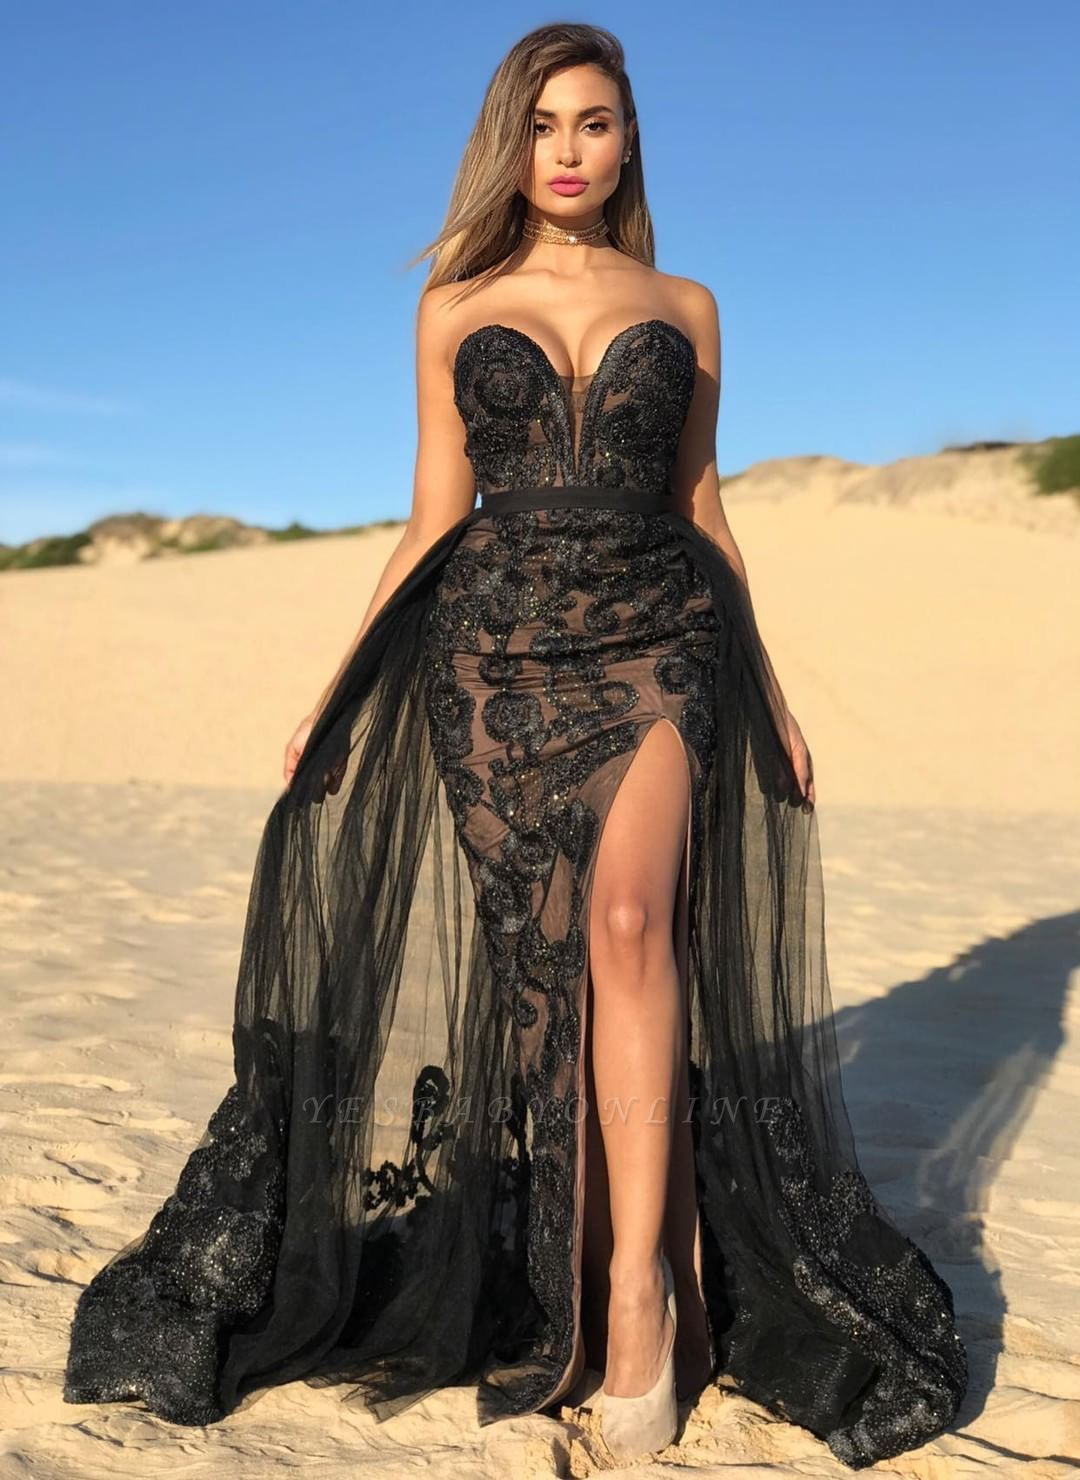 Black Sweetheart Backless Front Slit Applique Beading Prom Dresses   Sexy Party Dresses With Detachable Skirt